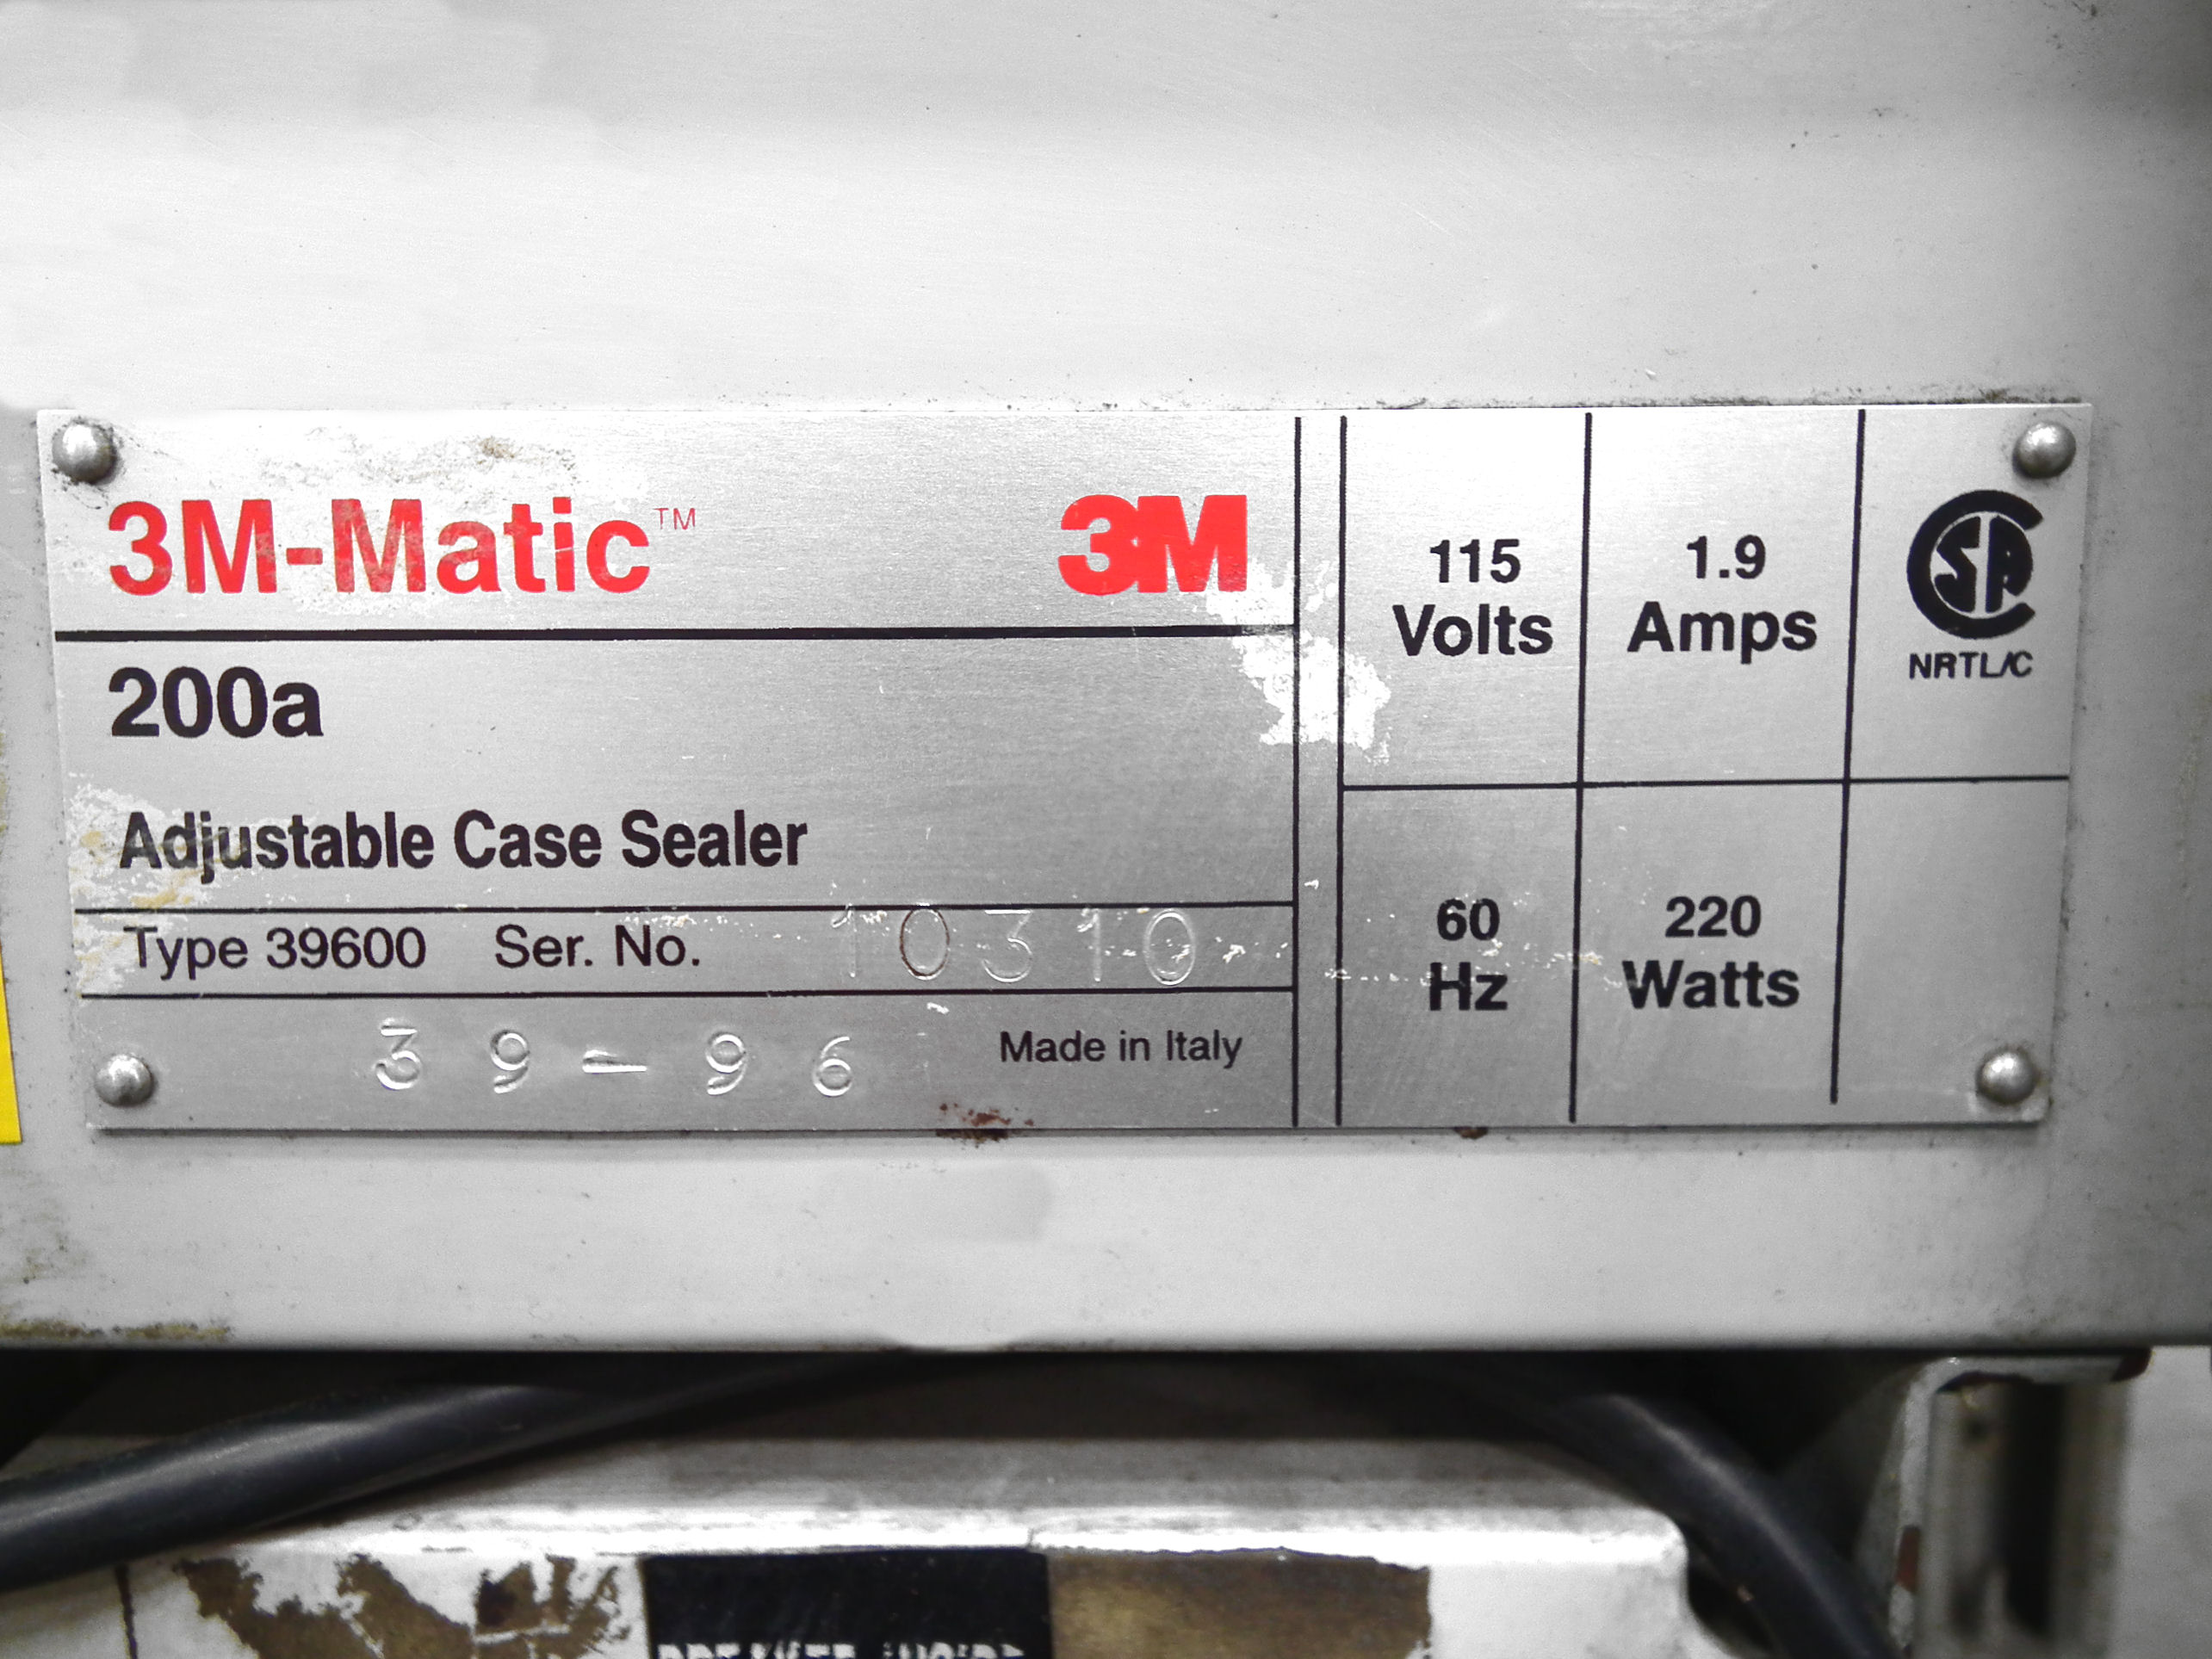 3M Top and Bottom Box Taper Model 200A A4919 - Image 8 of 8